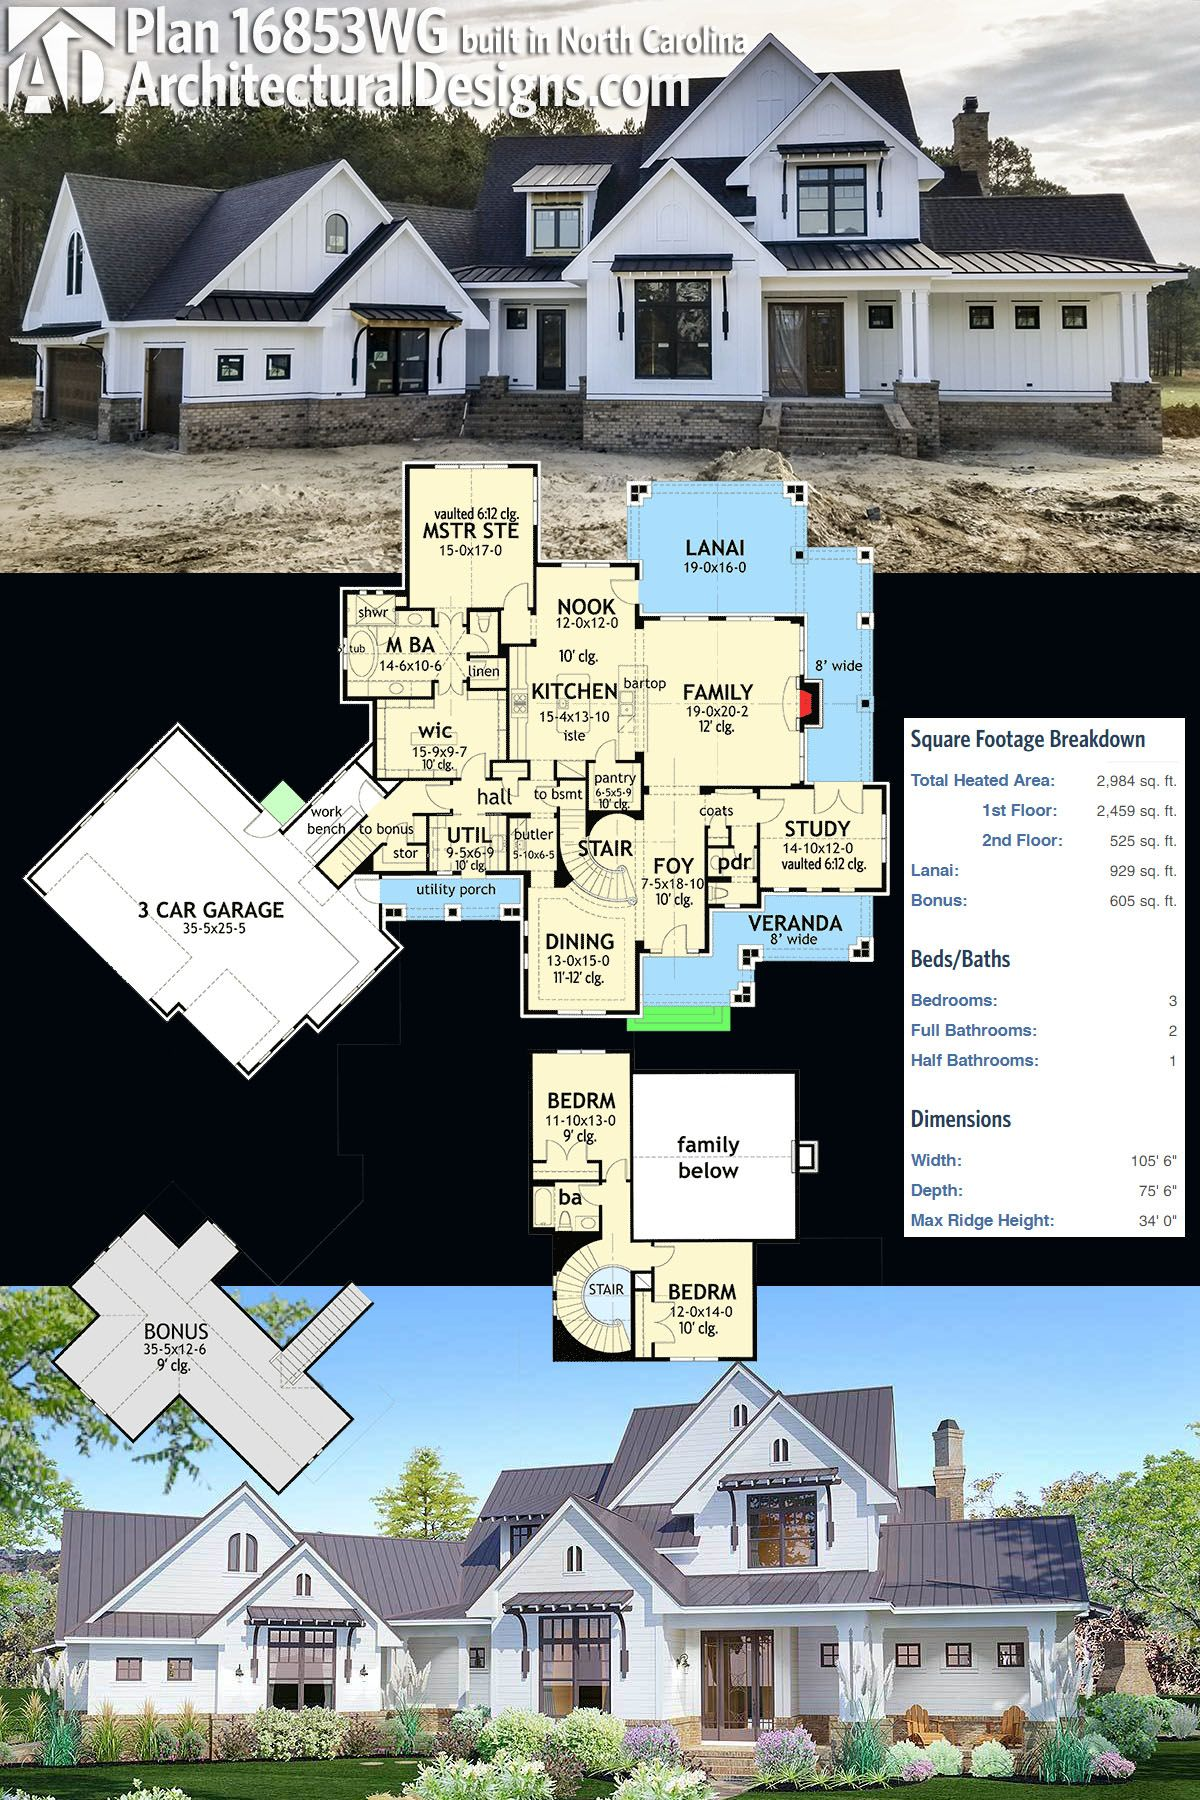 Plan 16853wg Elegant 3 Bed Farmhouse With Great Outdoor Living Spaces Modern Farmhouse Plans Farmhouse Plans Dream House Plans